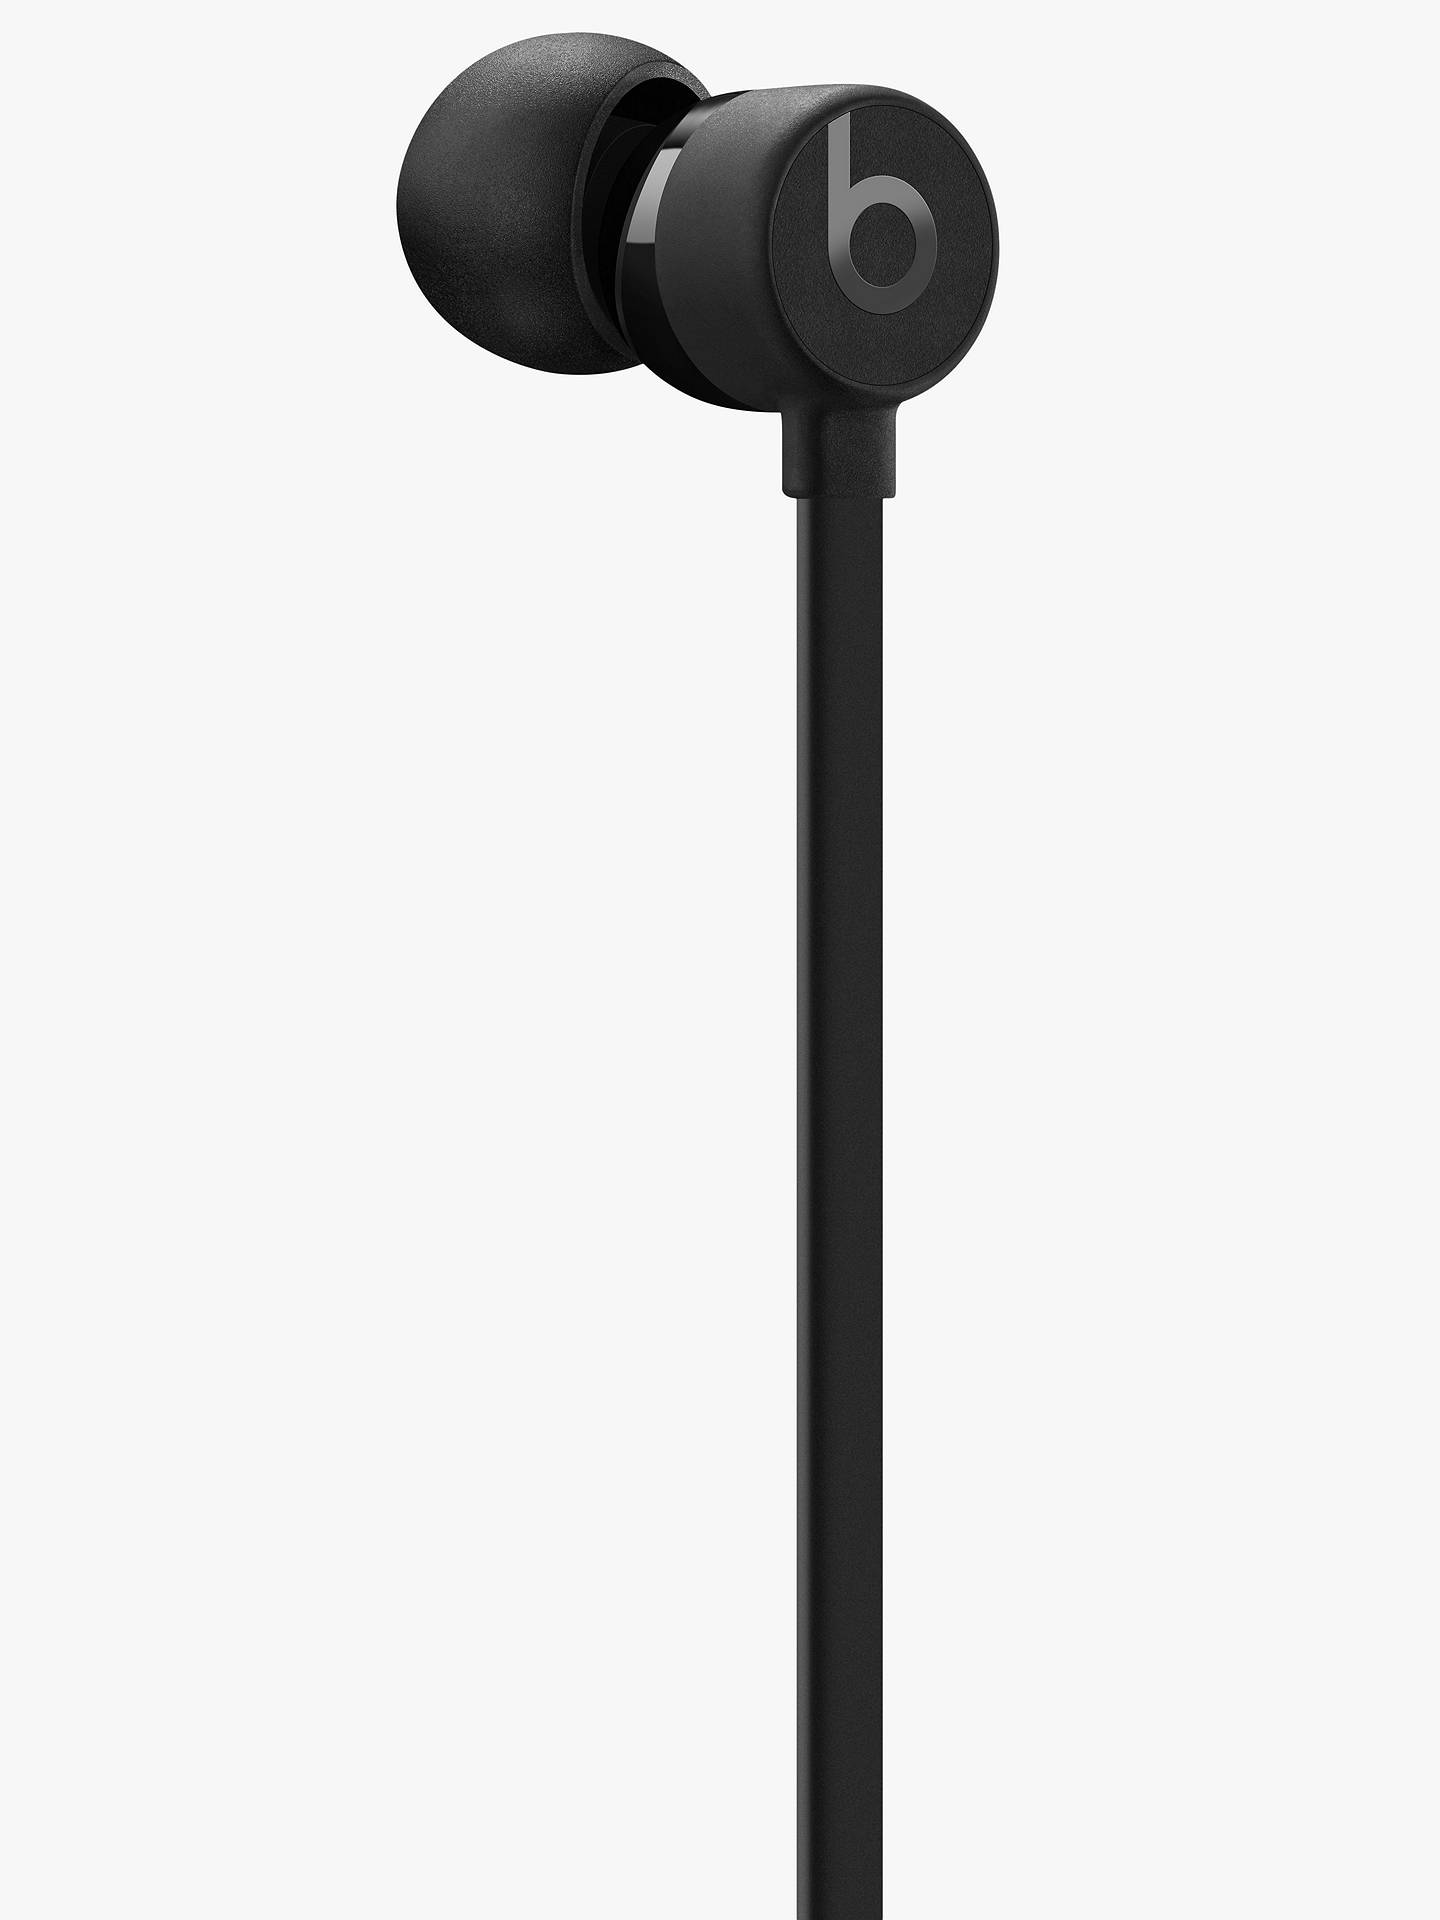 BuyBeatsˣ Wireless Bluetooth In-Ear Headphones with Mic/Remote, Black Online at johnlewis.com